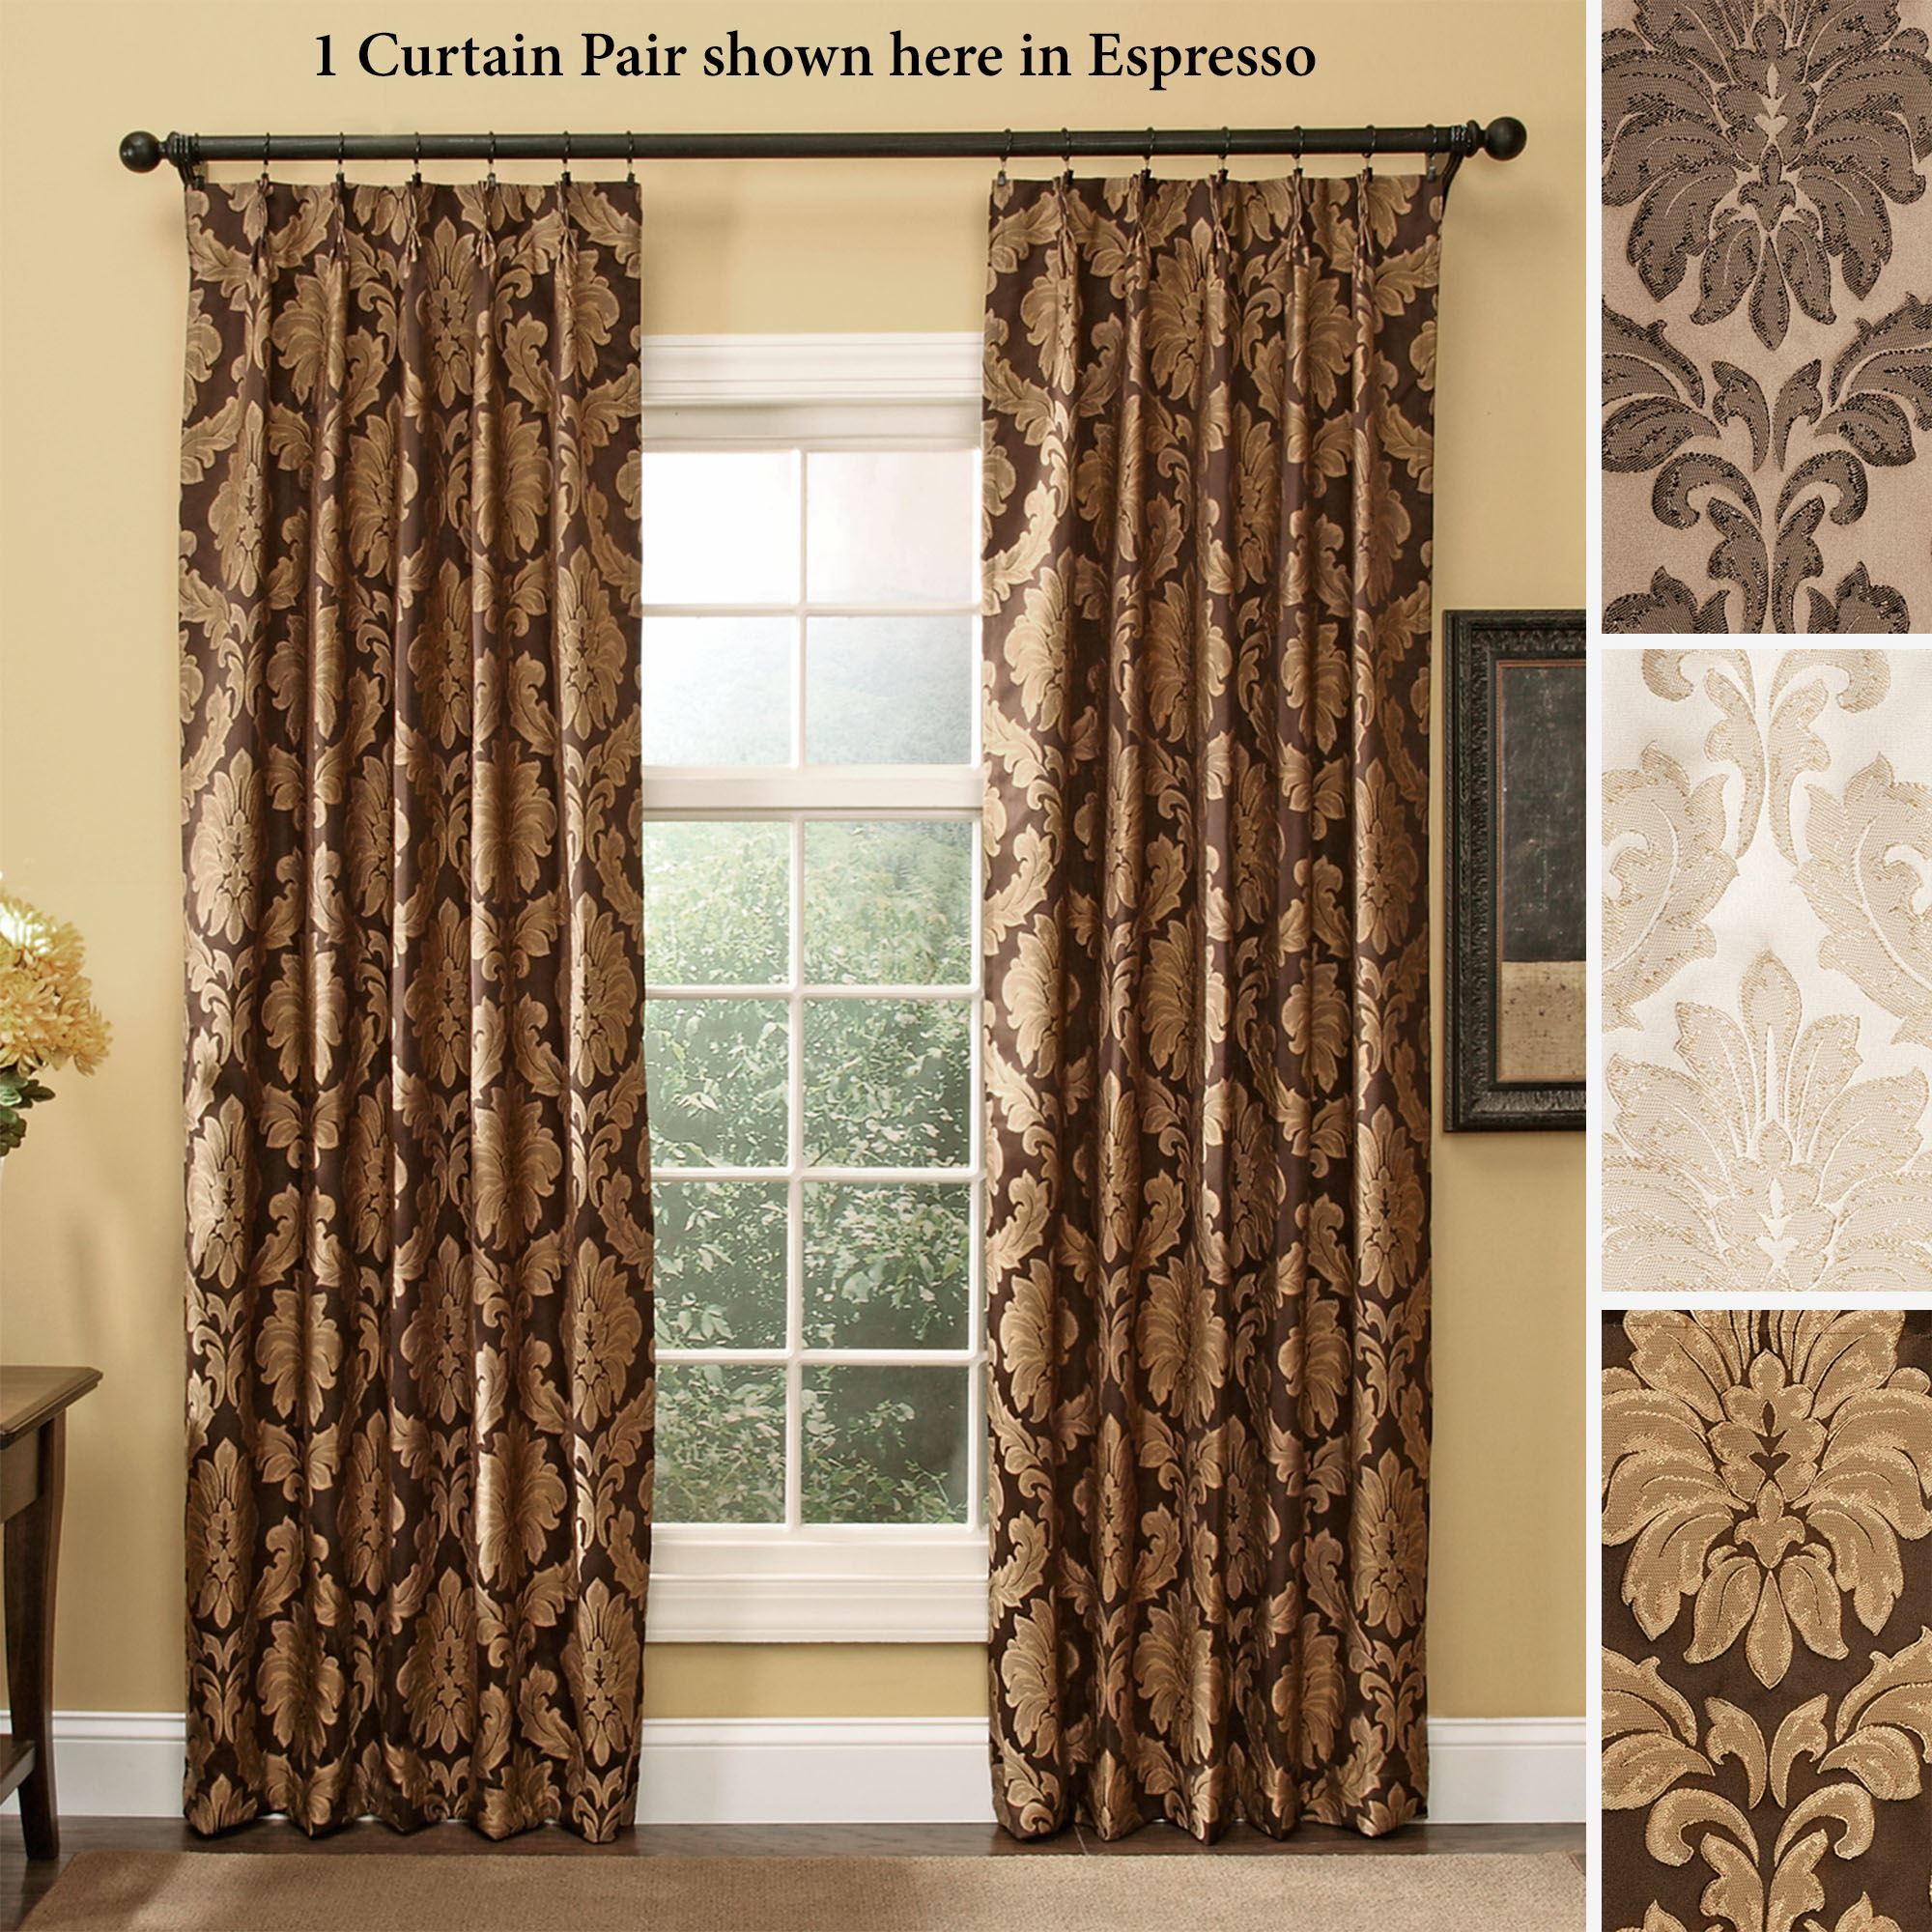 style context at banner curtain category match splau to pinch pleat curtains list blinds your desktop spotlight